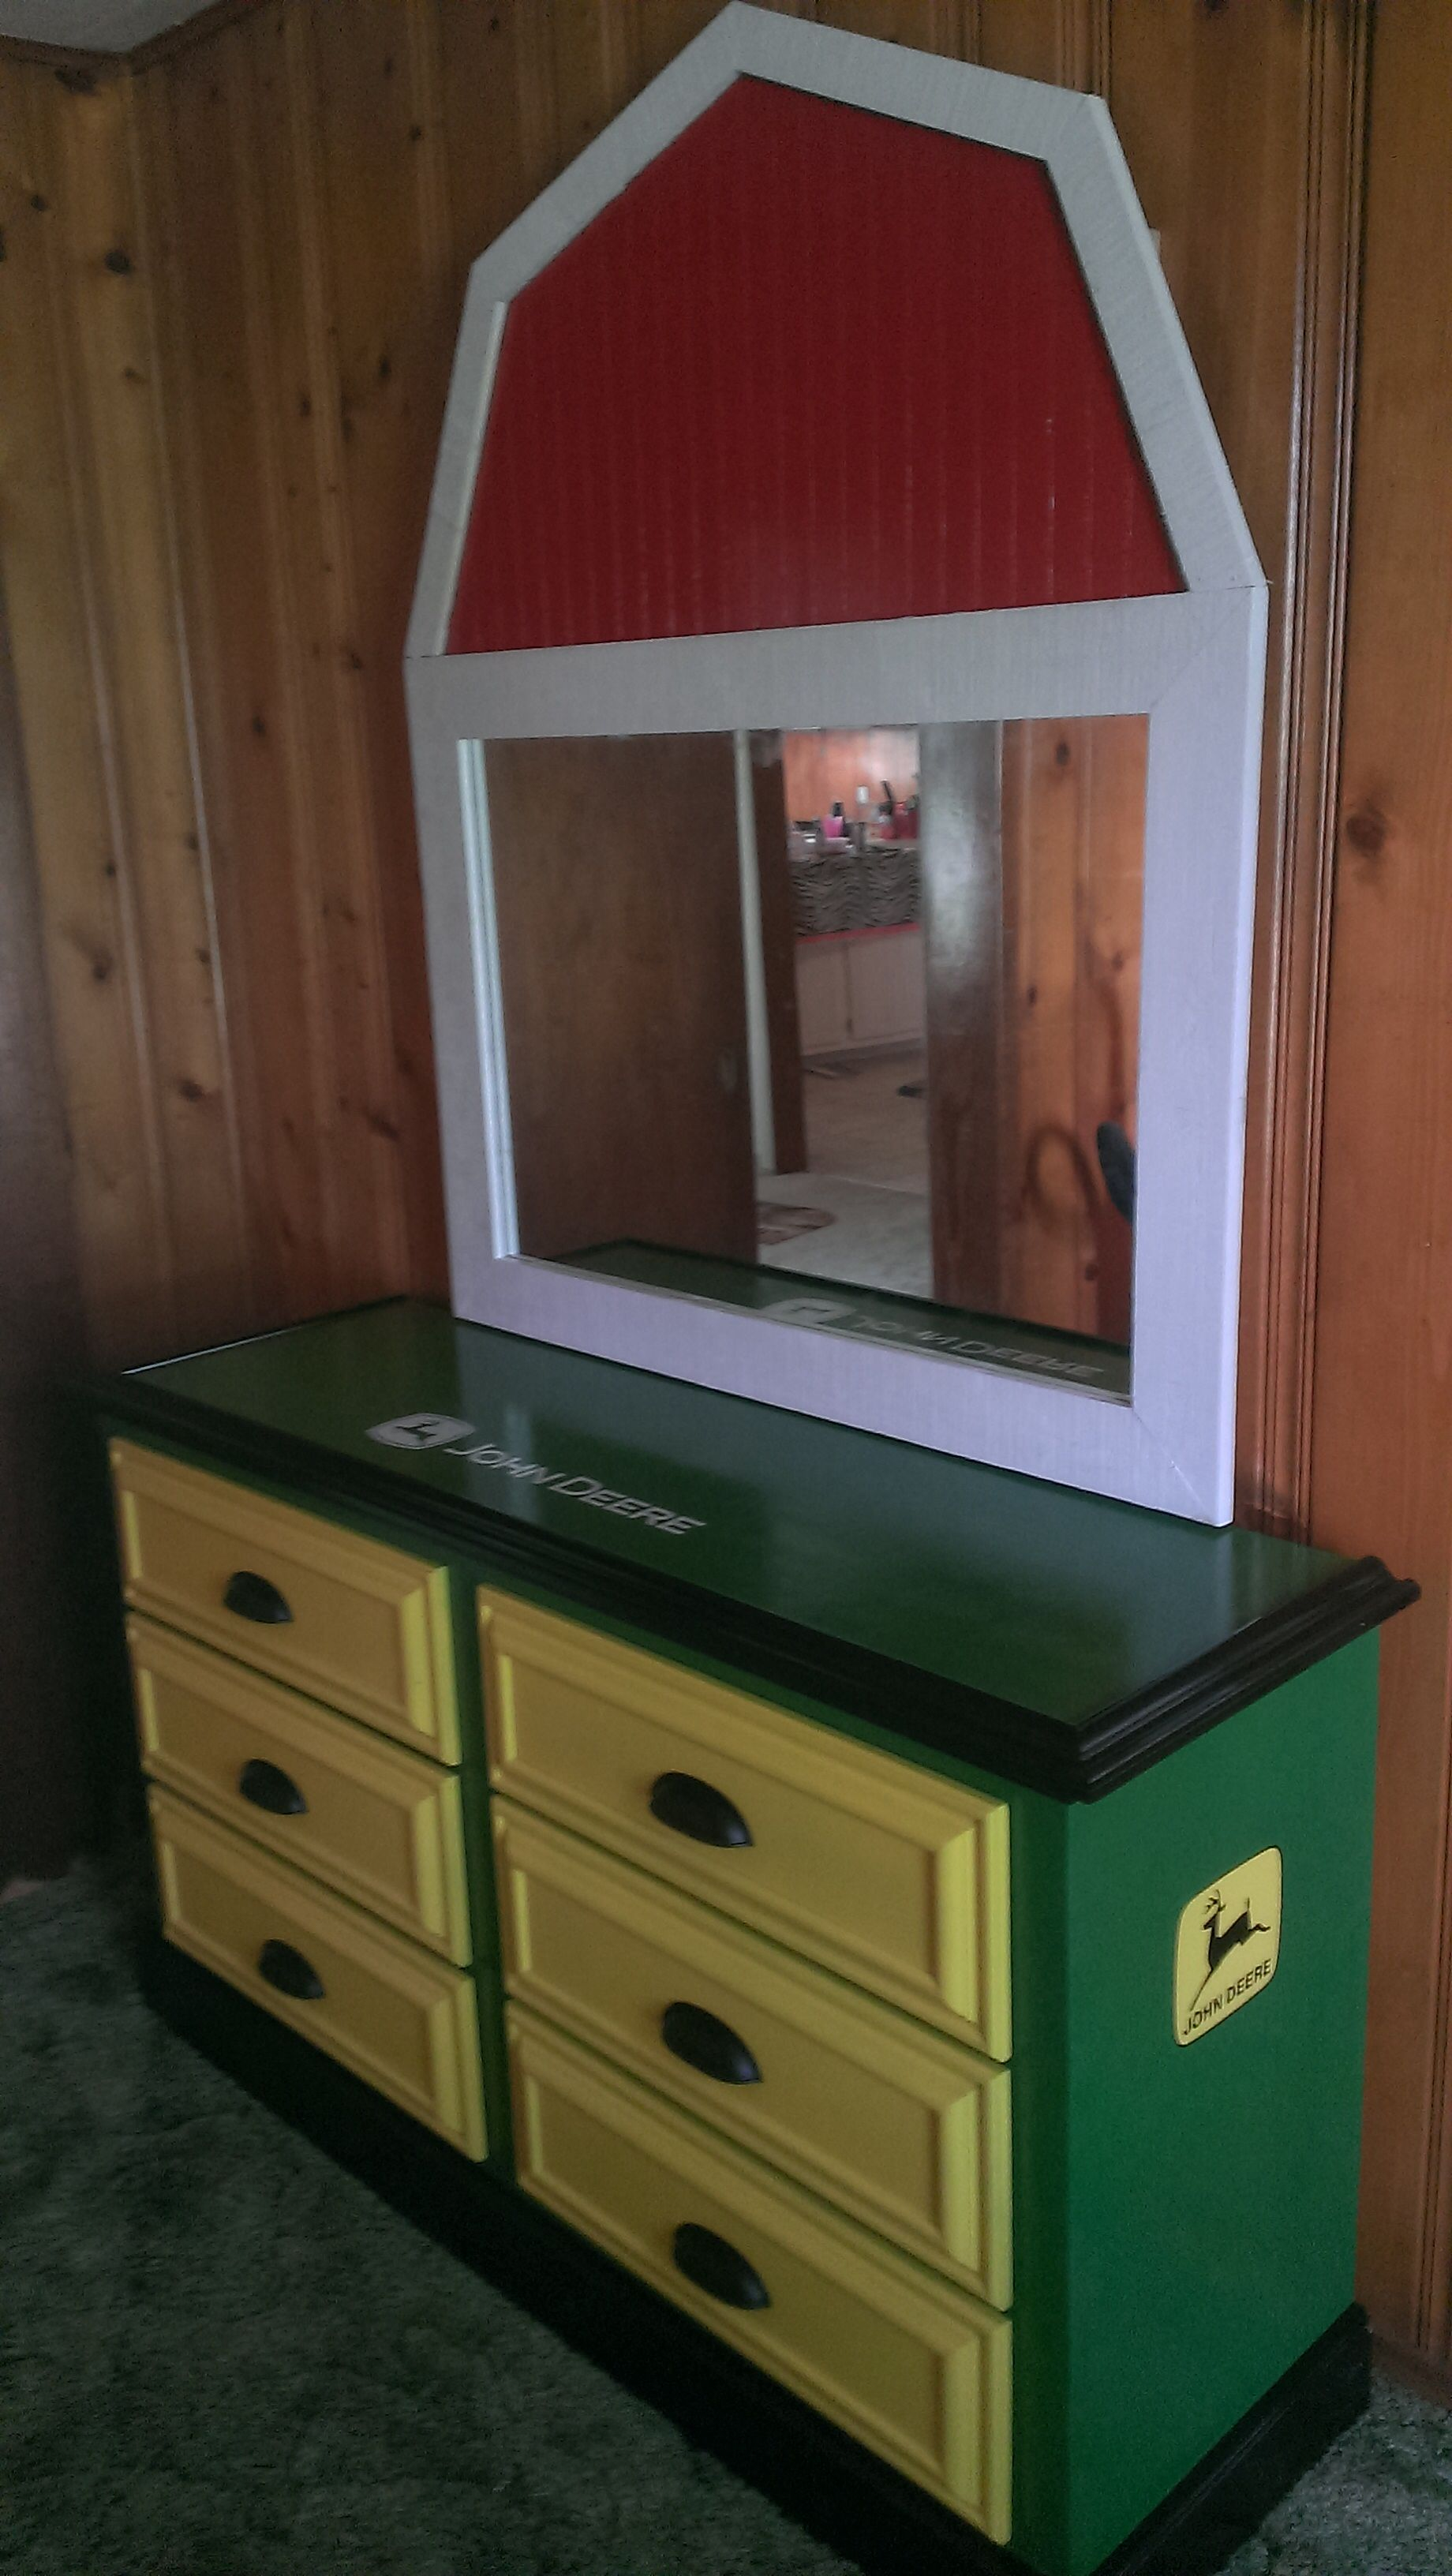 John Deere Boys Bedroom : John deere dresser side view bedroom furniture